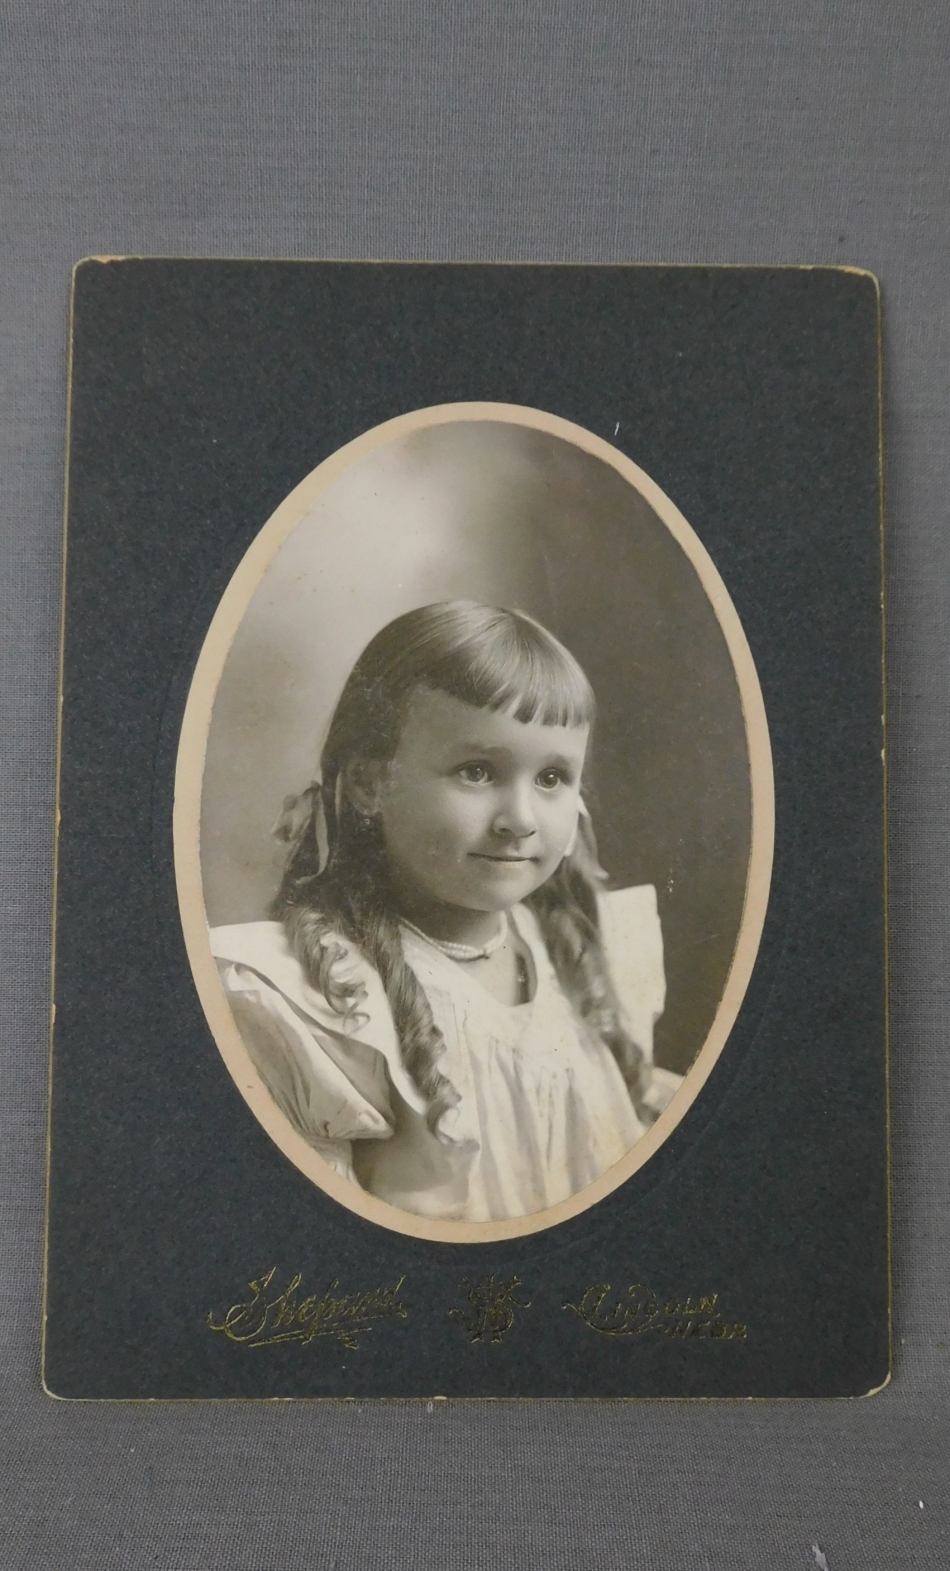 Vintage Victorian Girl Cabinet Card Photo, 1800s Photograph Curls & Bangs